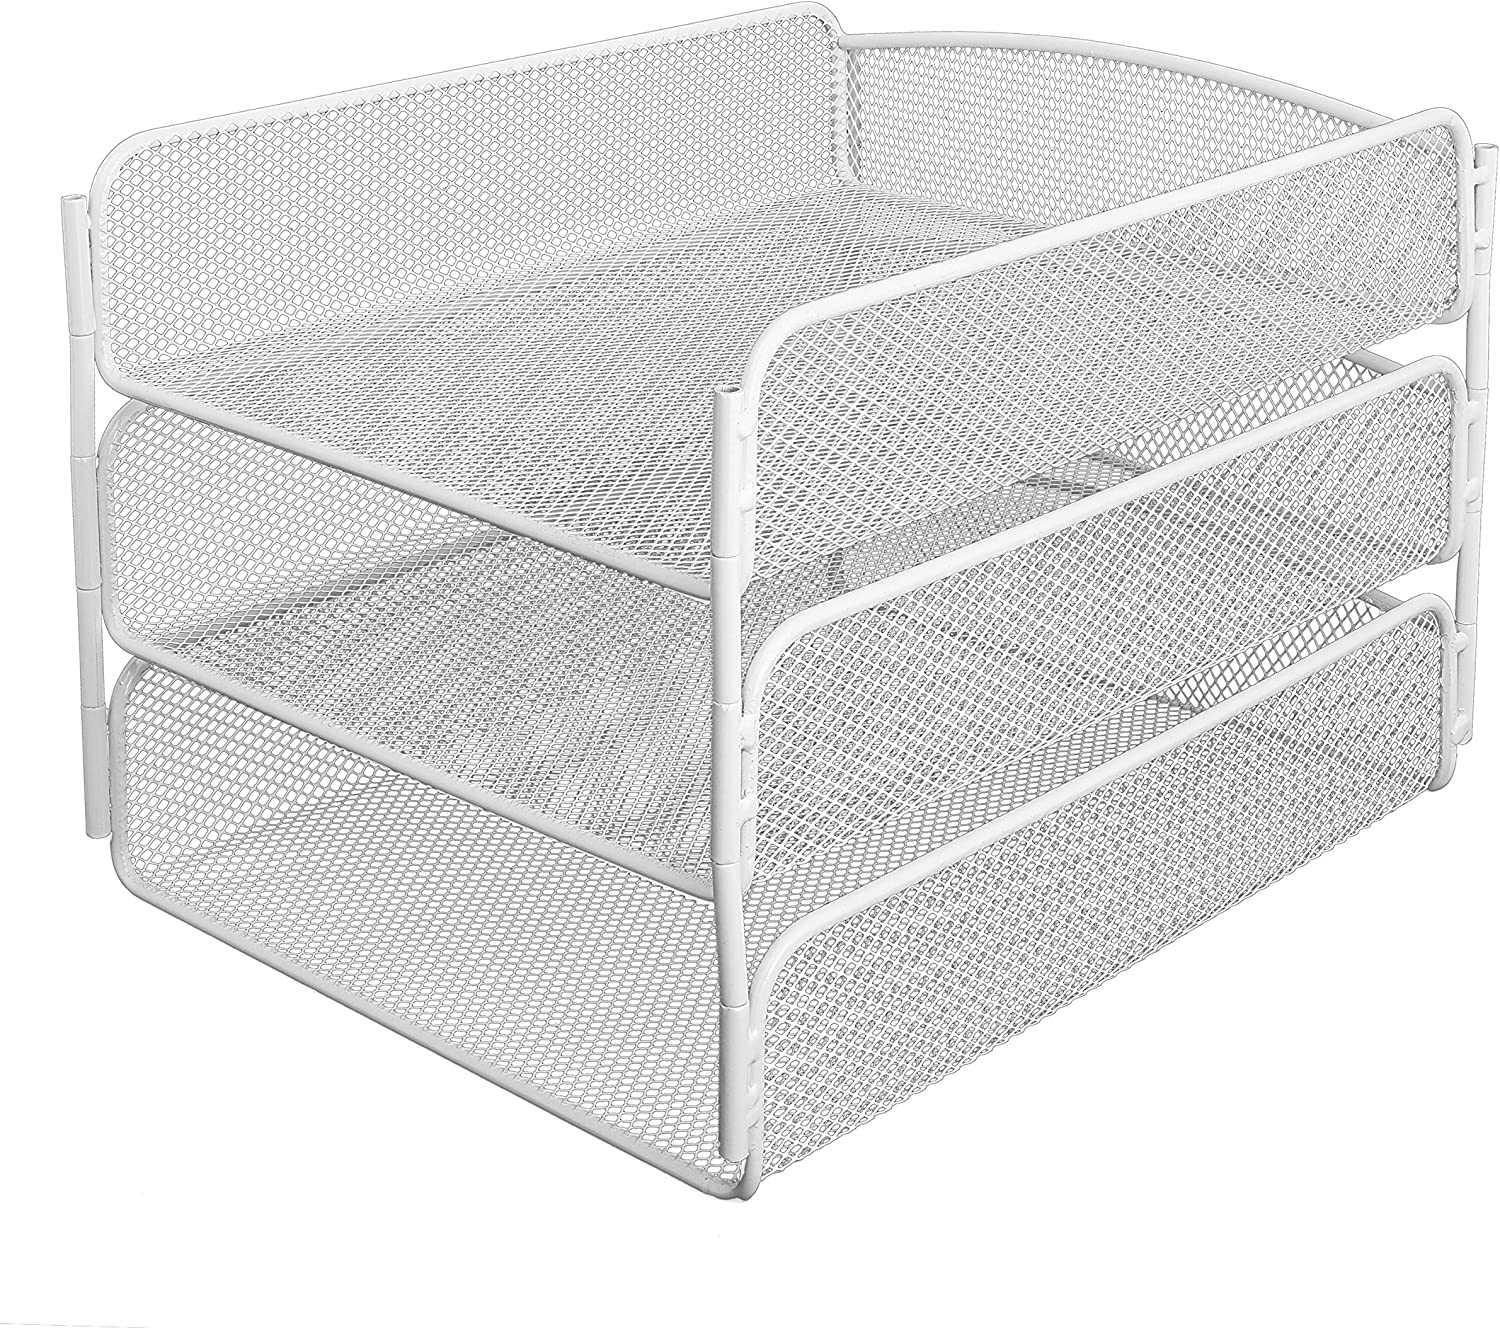 AdirOffice Mesh Desktop Organizer with Triple Tray - Contemporary Tabletop Shelf Rack - Easy Use Compartment & Drawer for Home & Office Use (White)